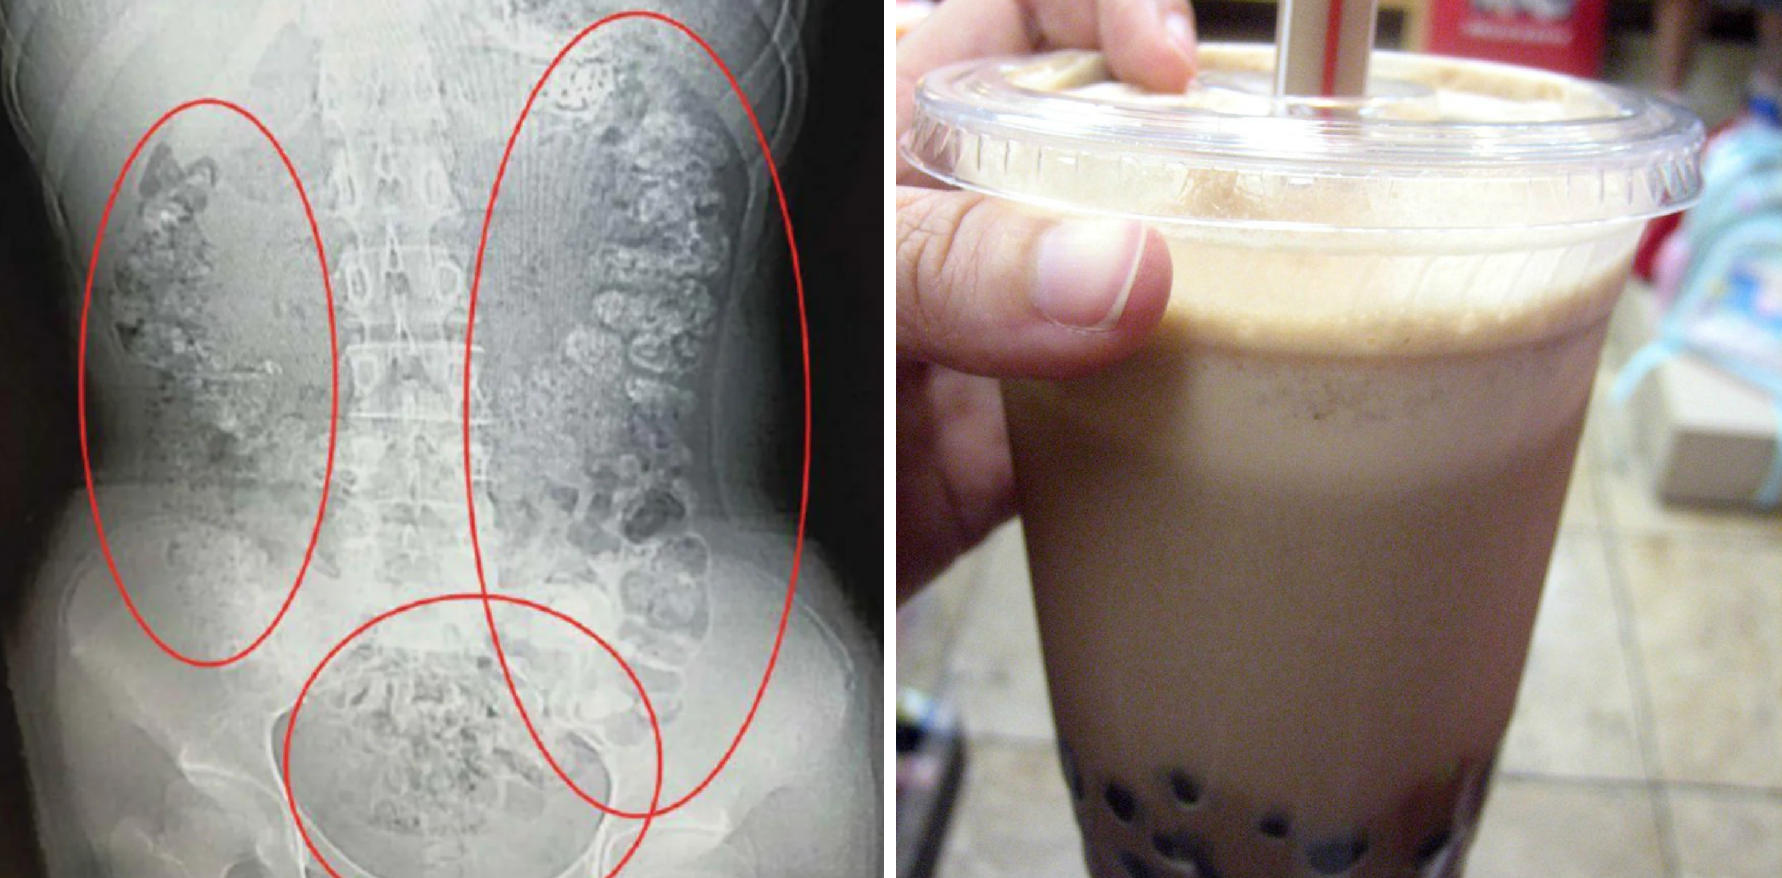 A 14-year-old went to the hospital after 100 bubble tea pearls were